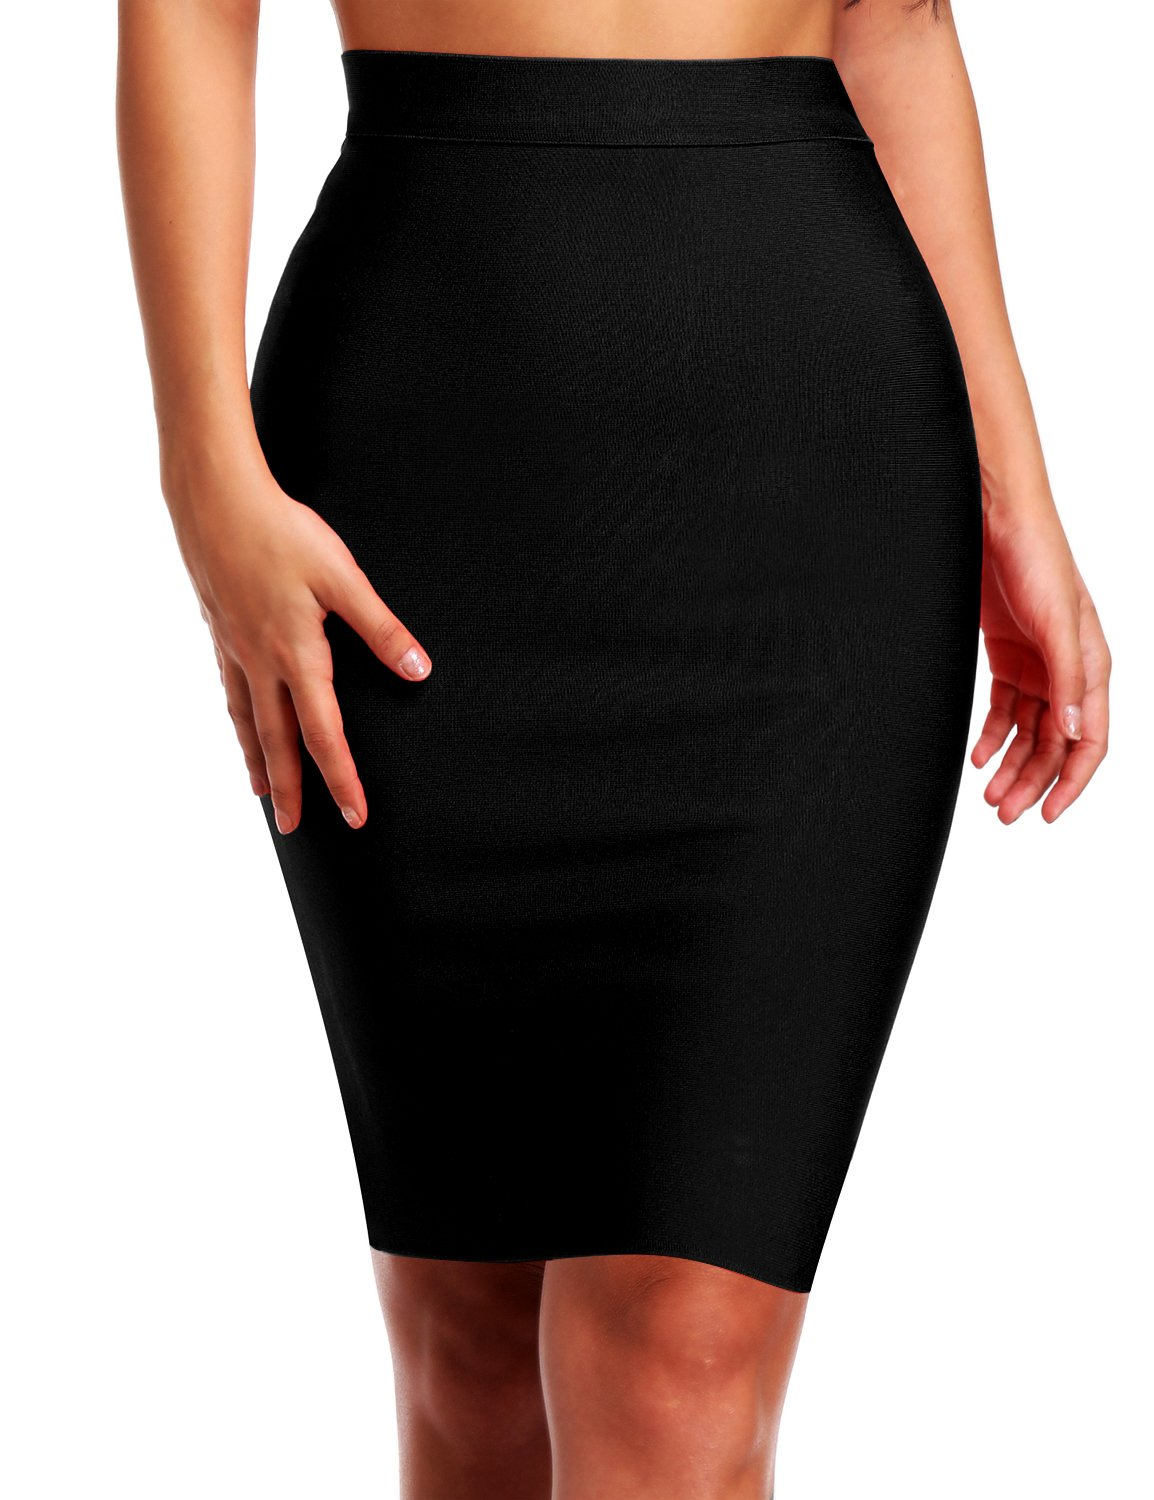 Hego Women's Solid Color Bodycon Bandage Knee-Length Skirt H4242 (M, Black) by Hego